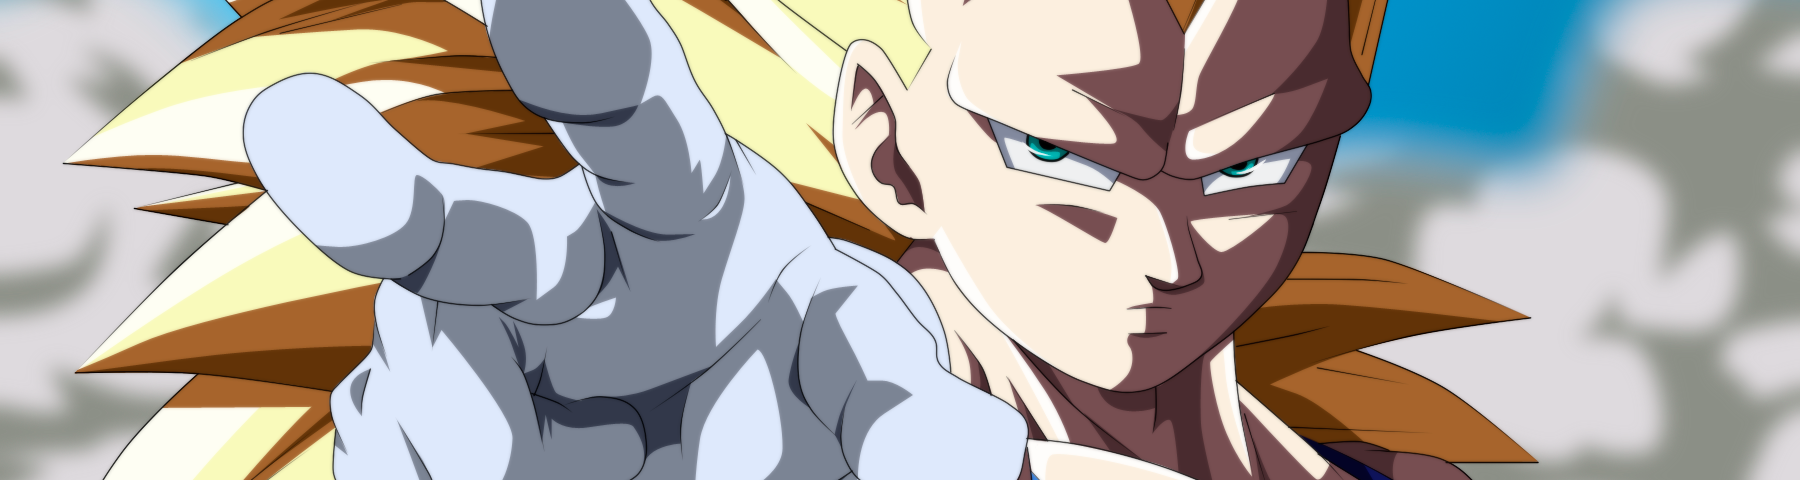 8 best english dubbed anime characters you should watch